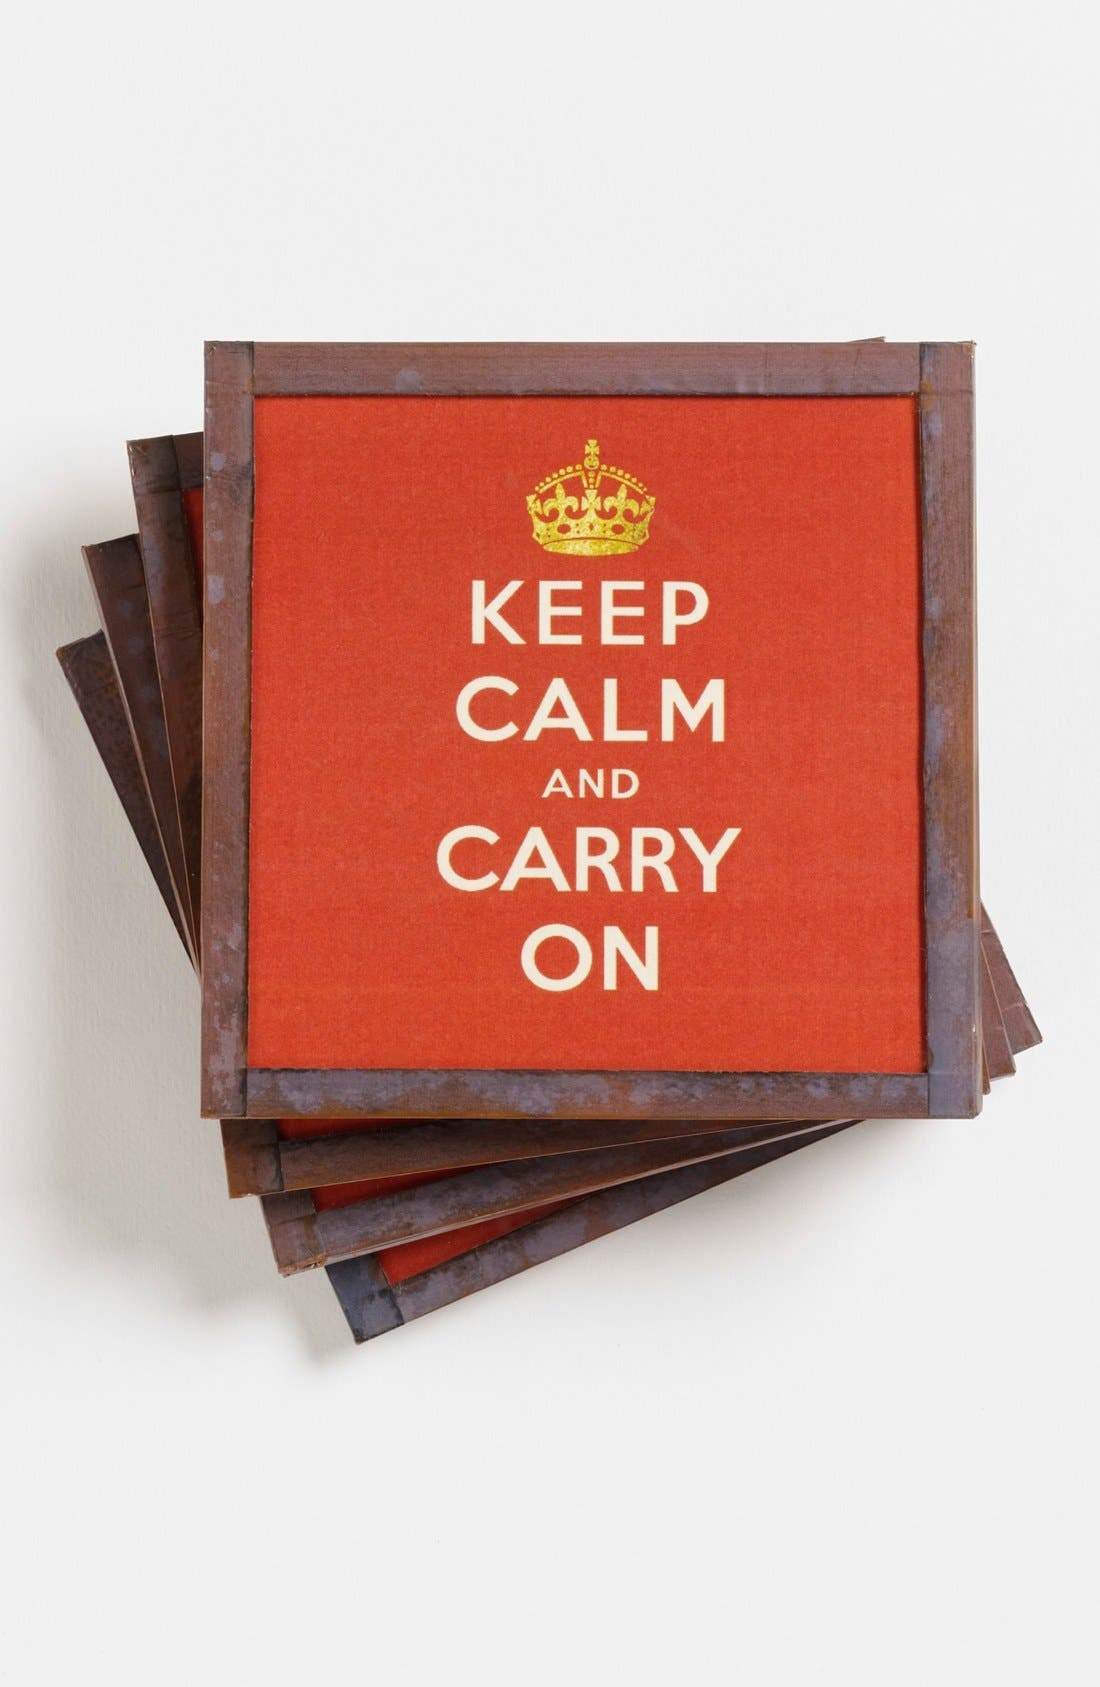 Alternate Image 1 Selected - Ben's Garden 'Keep Calm and Carry On' Coasters (Online Only)